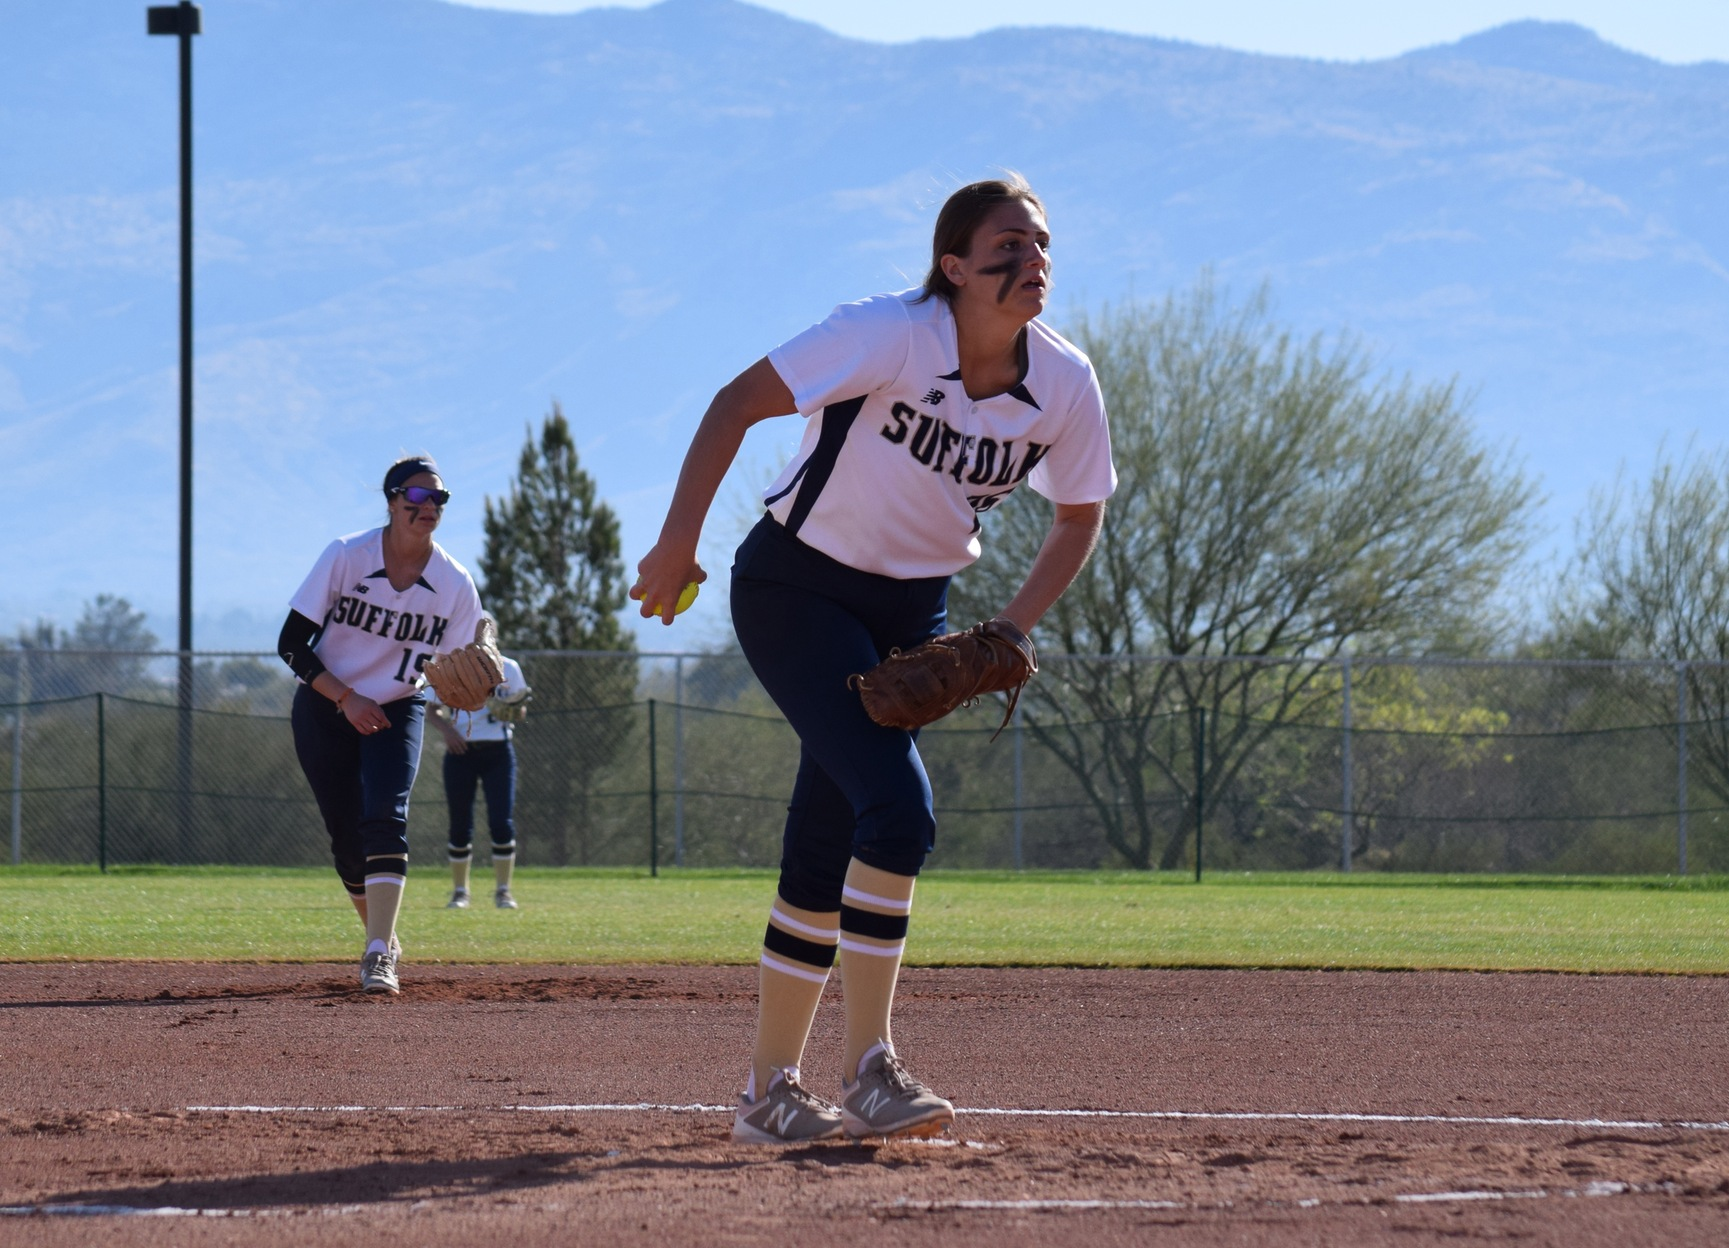 Softball Falls to Emerson, 11-9, in Two Extra Innings, in Game 1